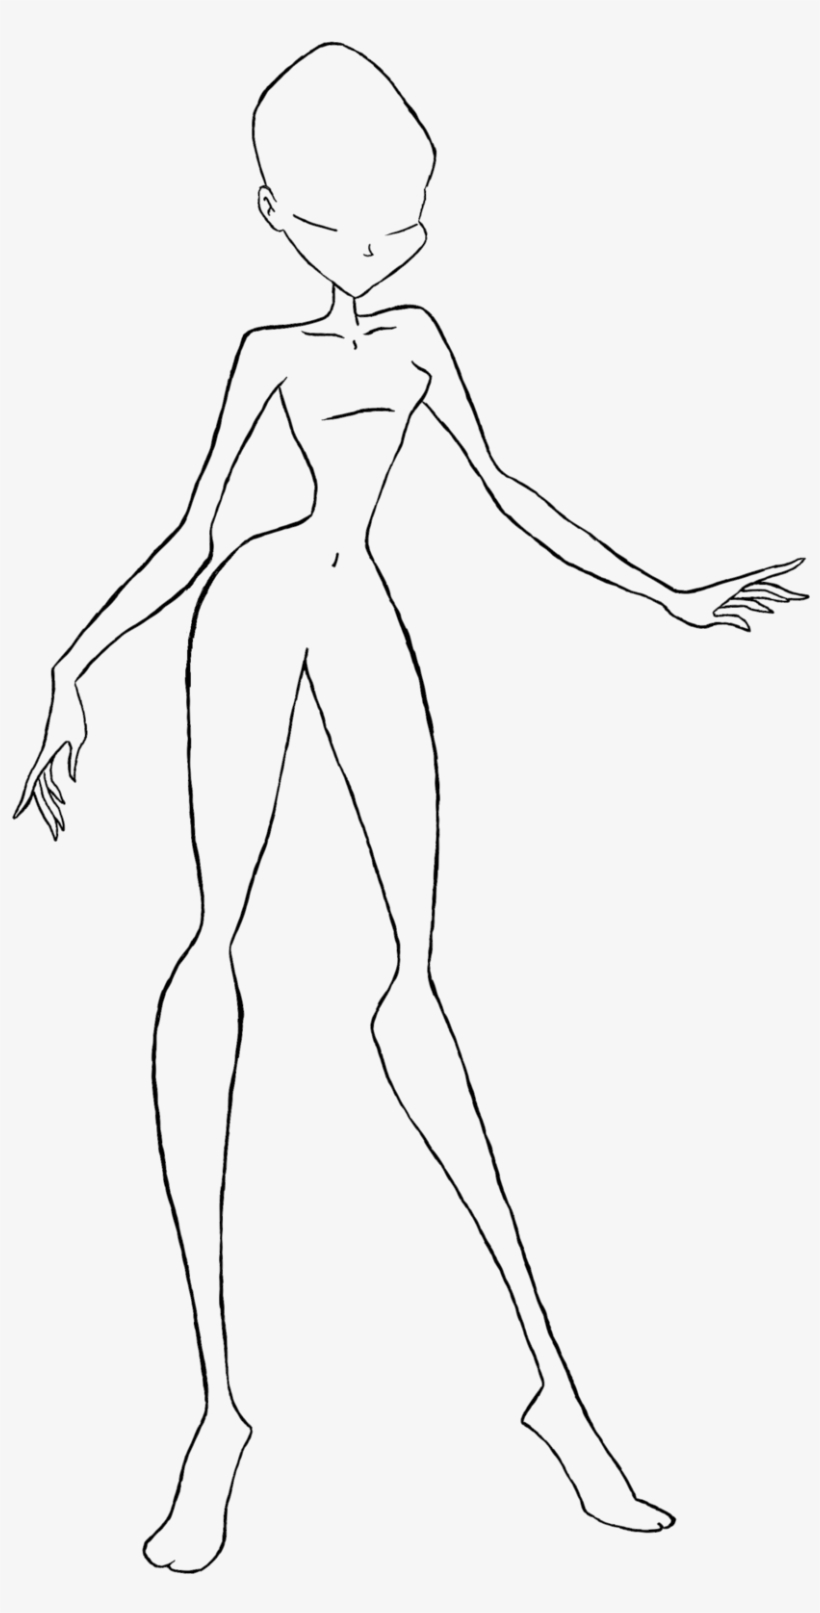 Body Base Drawing At Free For Personal Use Body Png Line Art Png Image Transparent Png Free Download On Seekpng